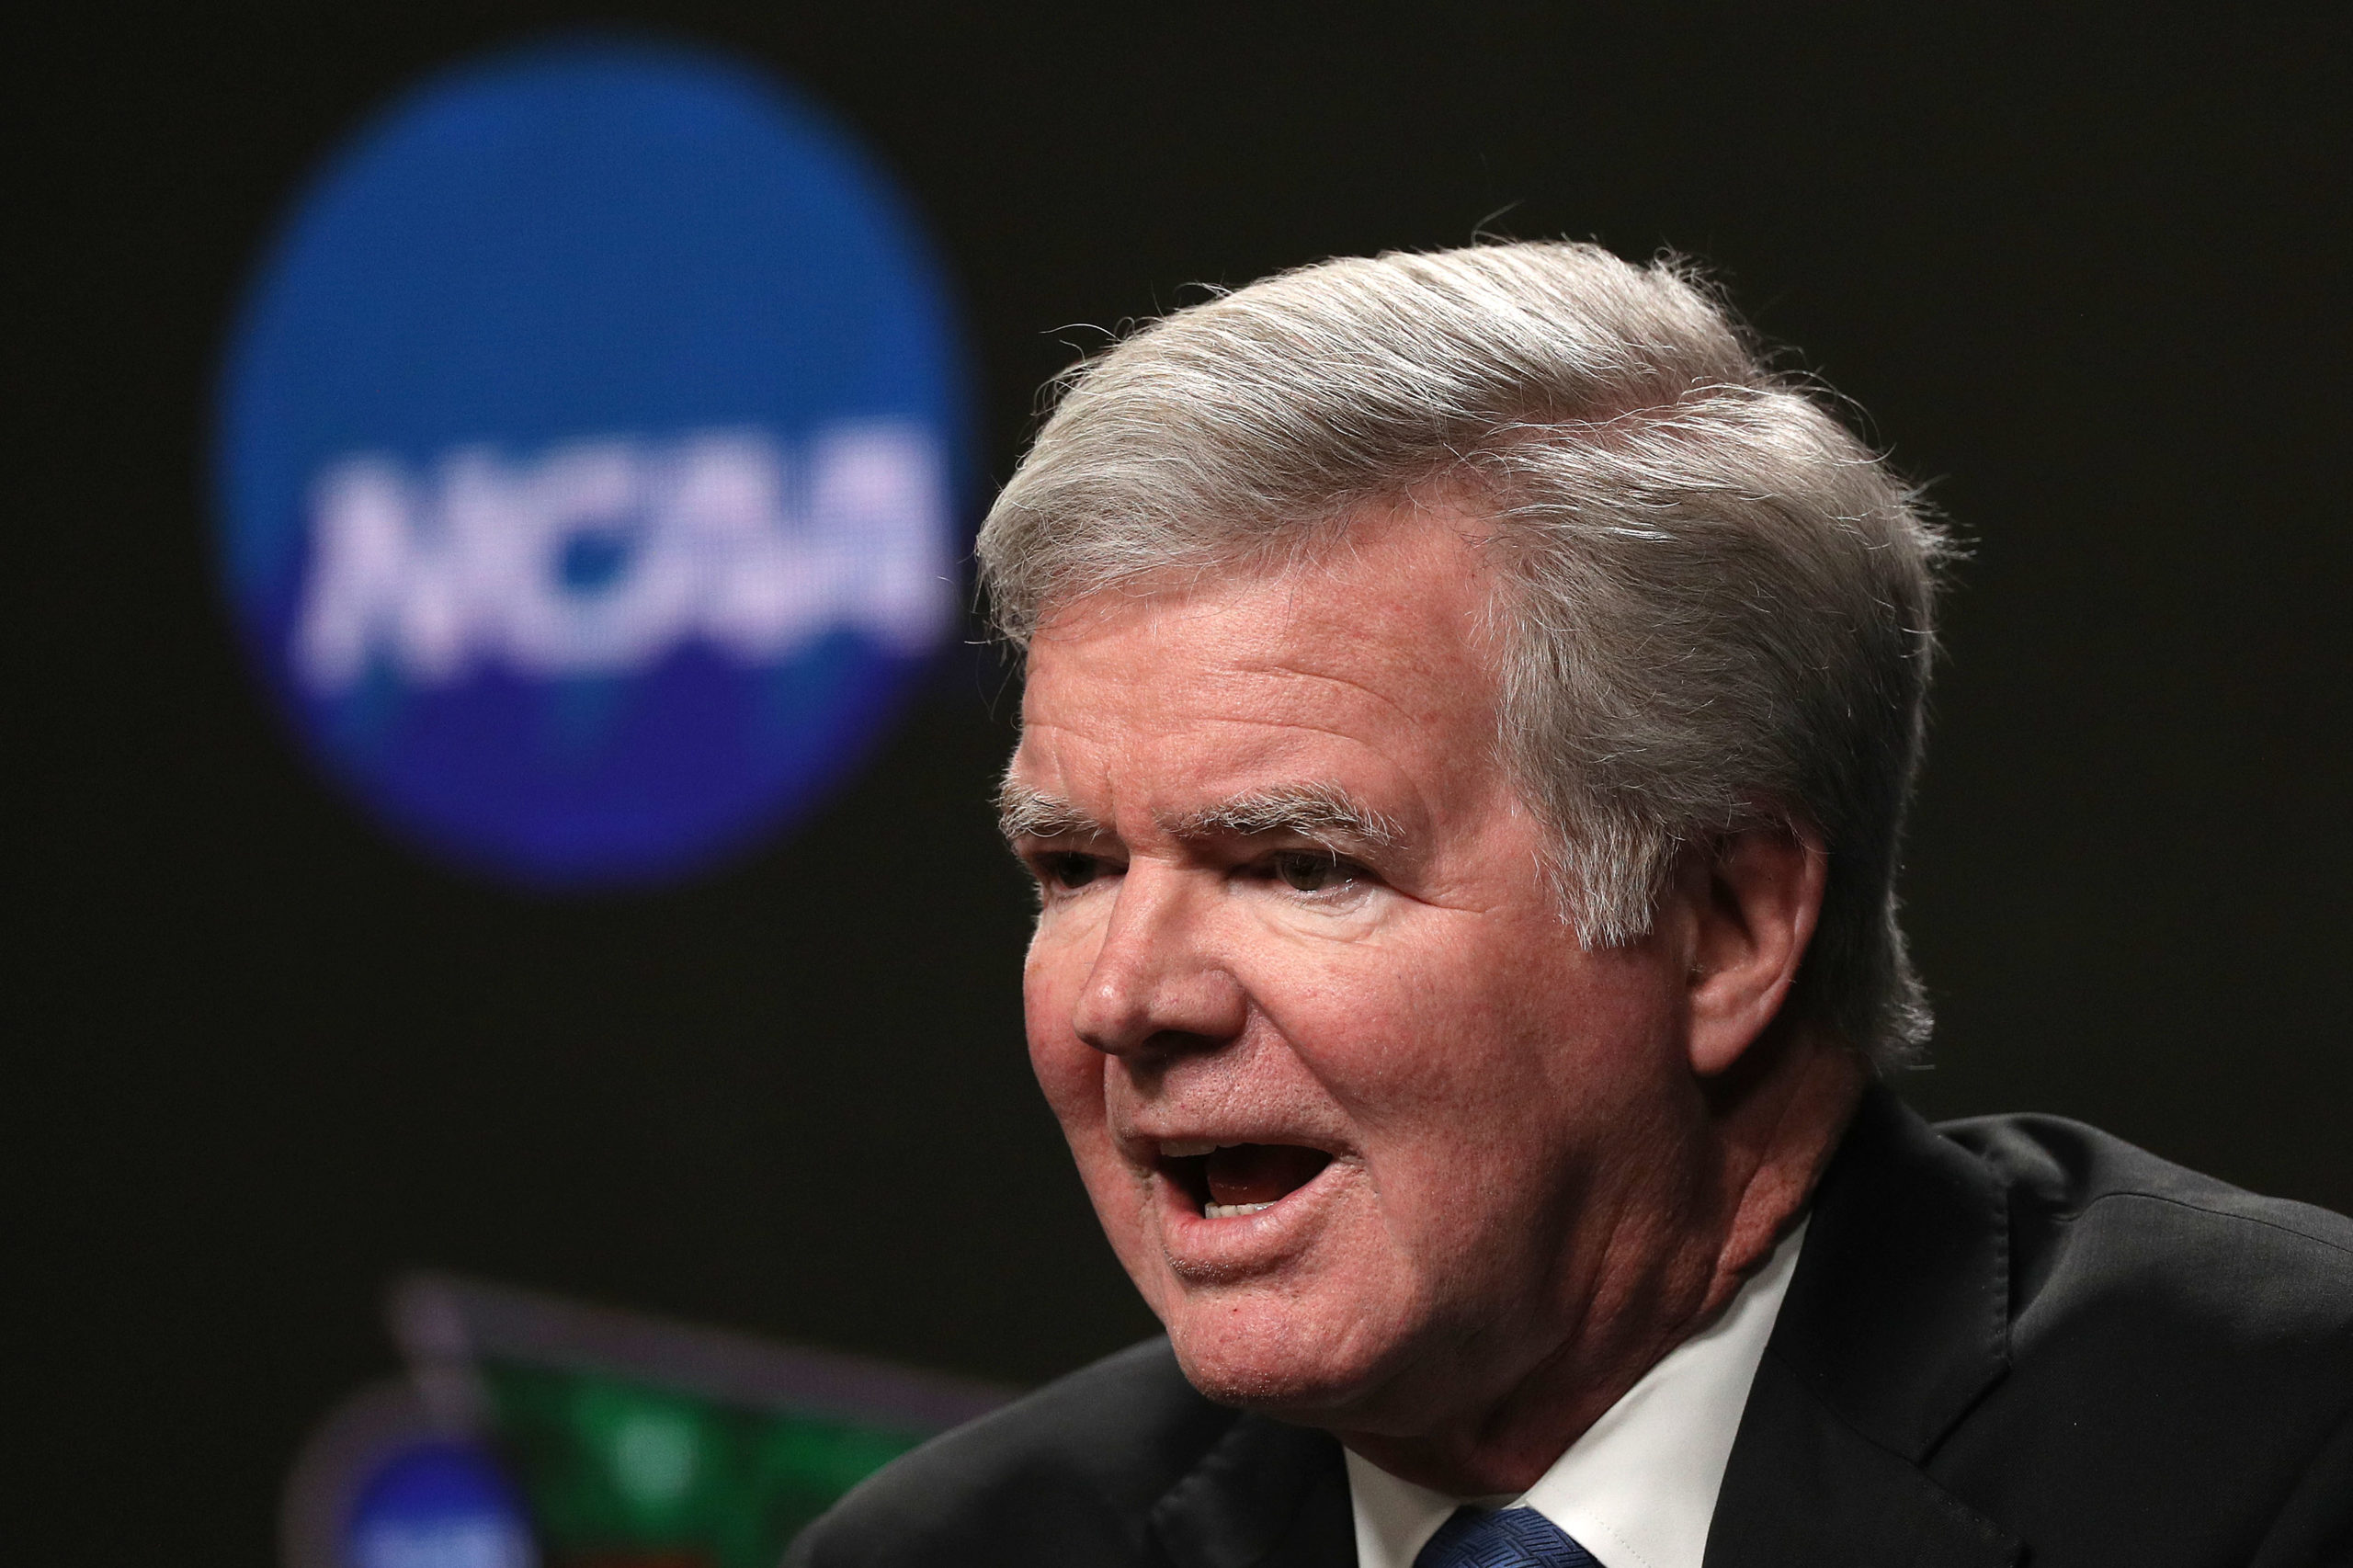 President of the National Collegiate Athletic Association Mark Emmert speaks to the media ahead of the Men's Final Four at U.S. Bank Stadium on April 04, 2019 in Minneapolis, Minnesota. (Photo by Maxx Wolfson/Getty Images)